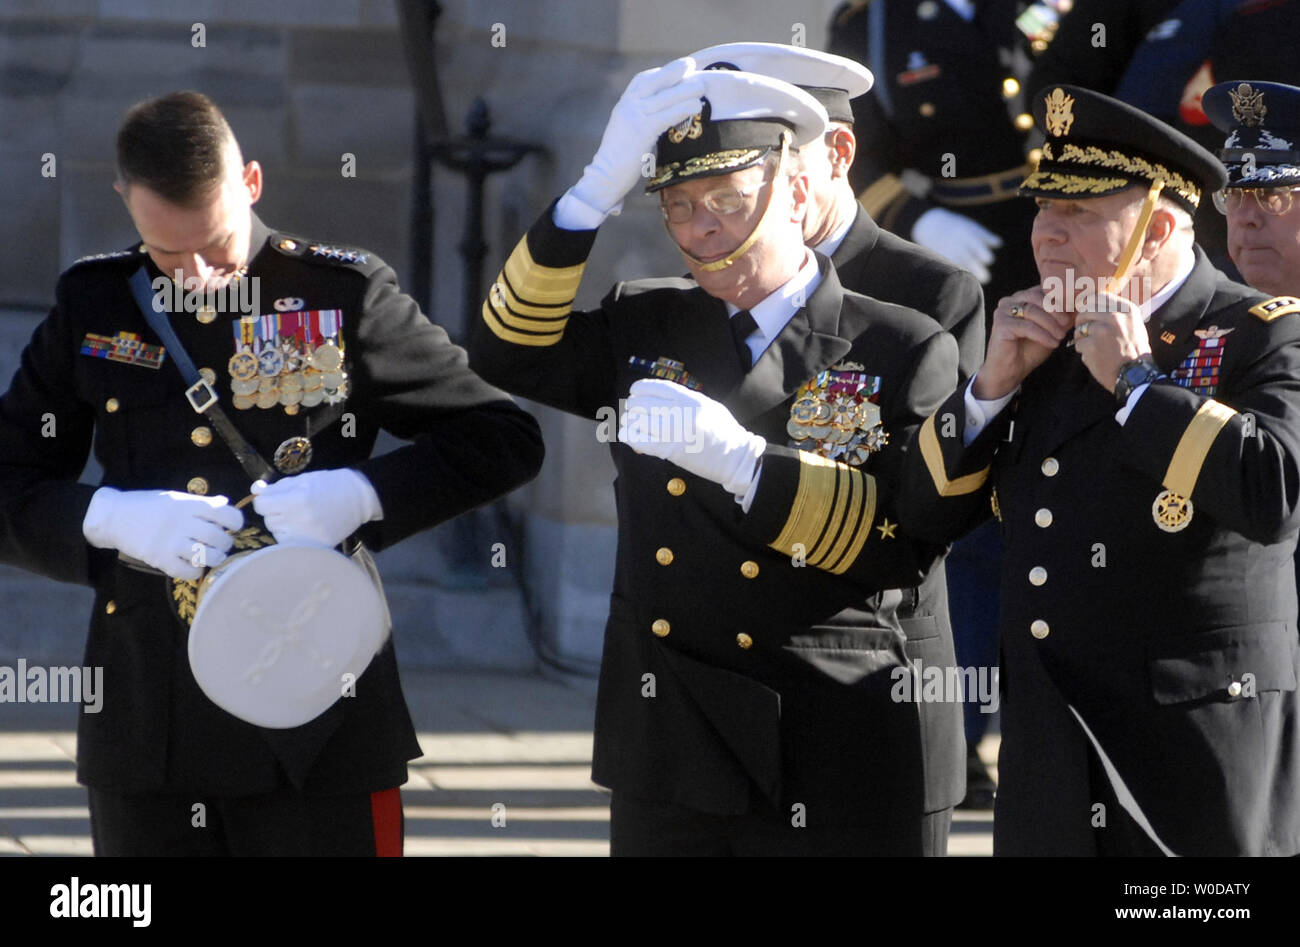 The Chairman of the Joint Chiefs of Staff Gen. Peter Pace (L), Vice Chairman of the Joint Chiefs of Staff Adm. Edmund Giambastiani (C)and Vice Chief of staff of the US Army Gen. Richard Cody (R) attempt to secure their hats as a strong wind blows during the state funeral for former President Gerald Ford at the National Cathedral in Washington on January 2, 2007. (UPI Photo/Kevin Dietsch) - Stock Image